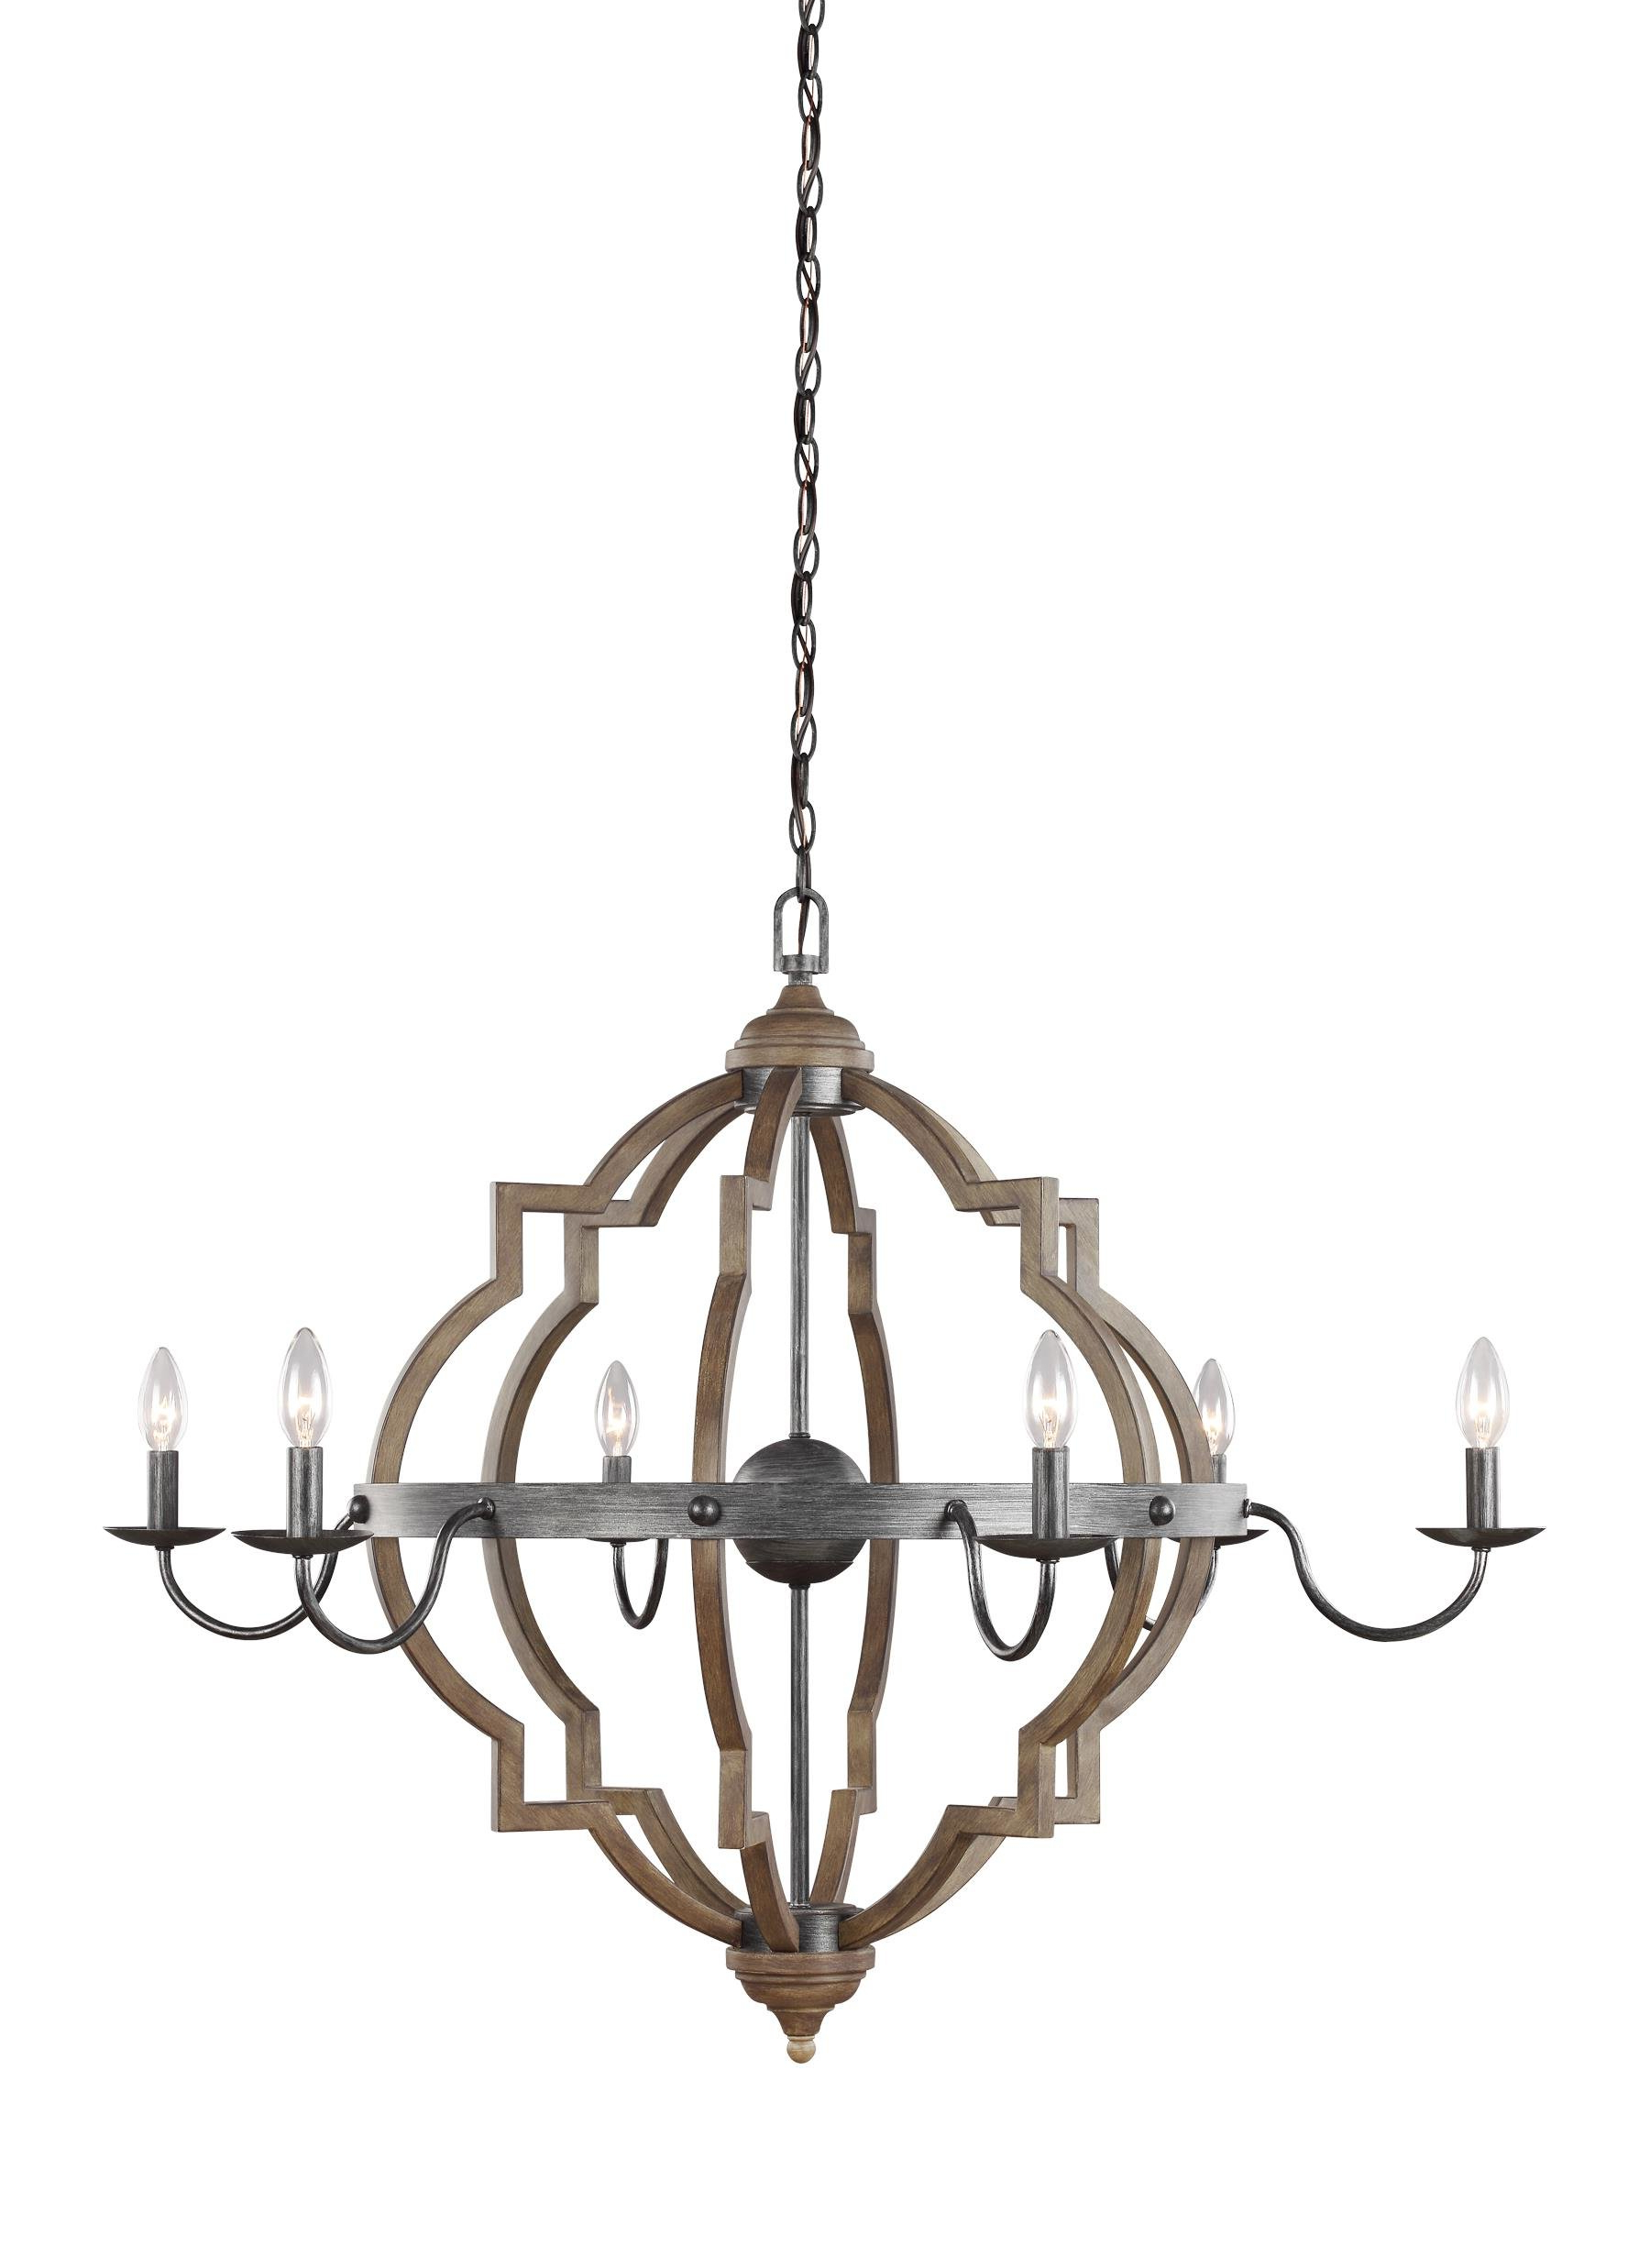 2020 Shaylee 6 Light Candle Style Chandeliers With Donna 6 Light Candle Style Chandelier (View 1 of 25)